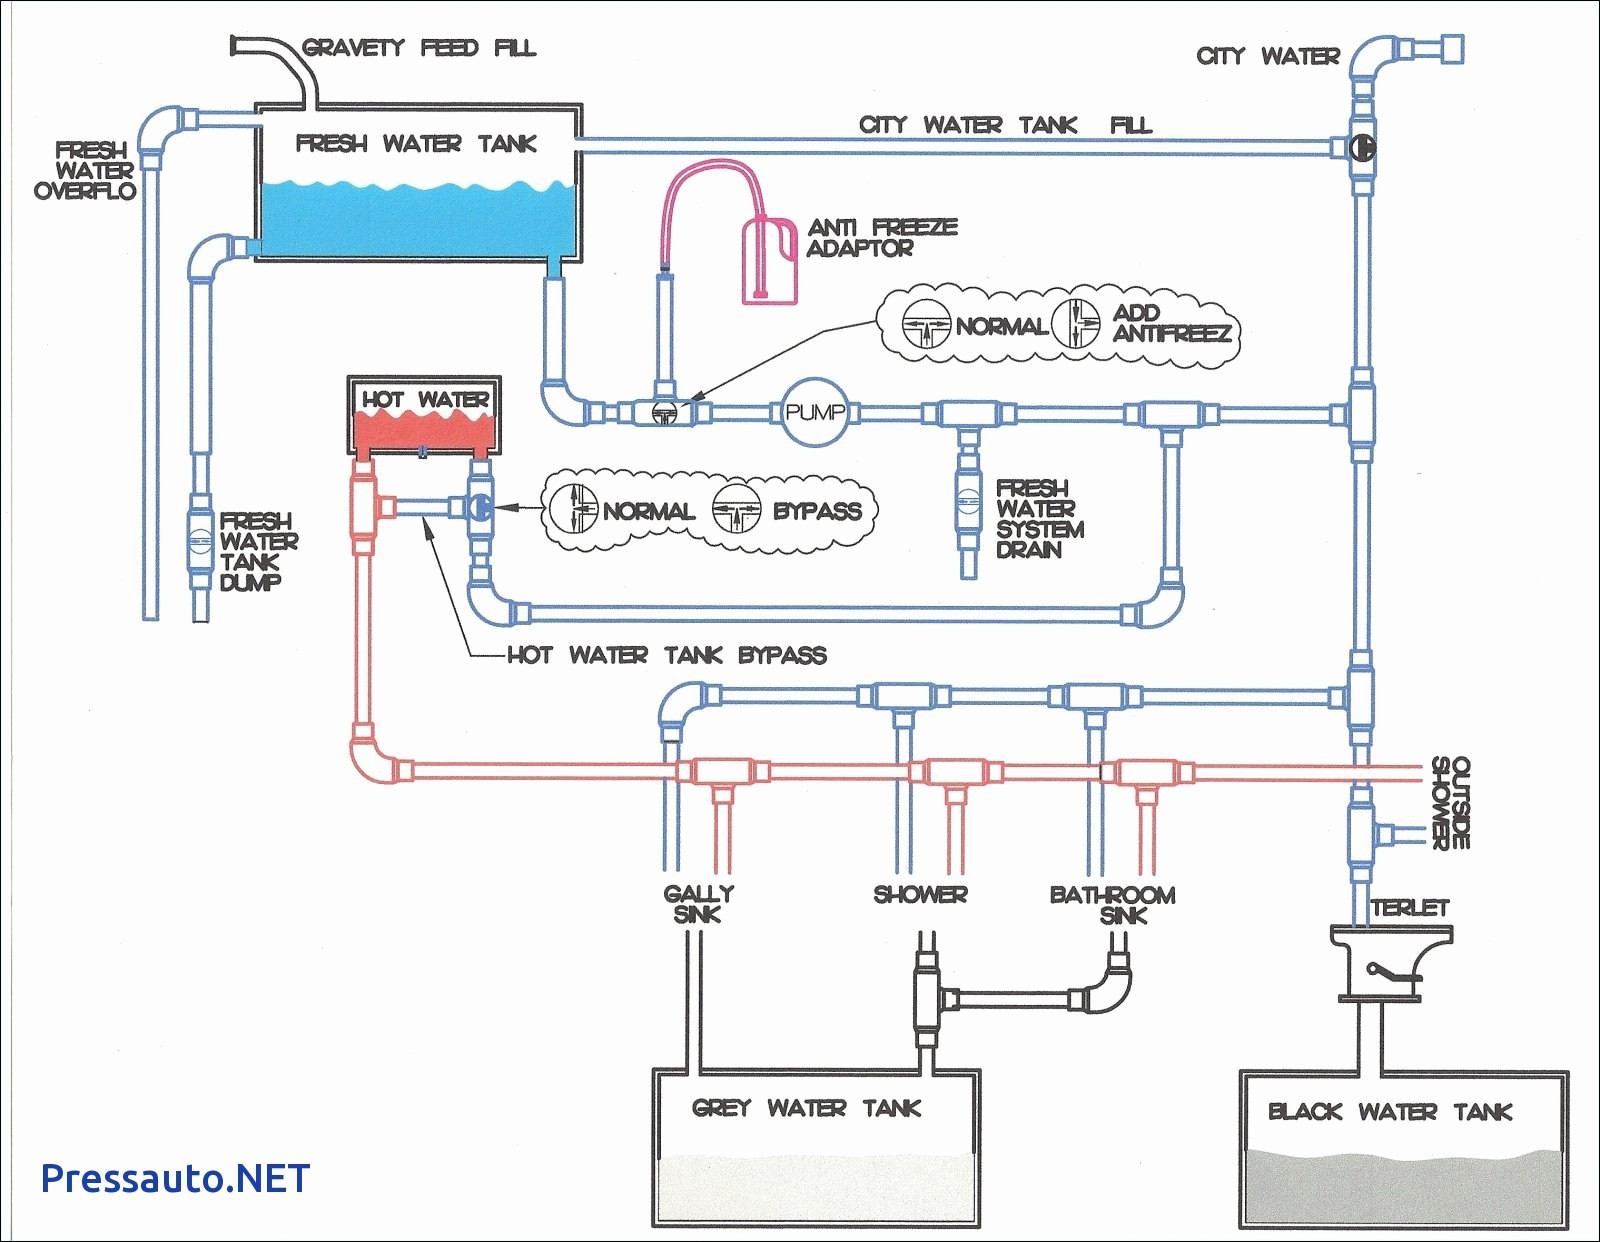 Trailer Connector Wiring Diagram 7 Way - Shahsramblings - Food Trailer Wiring Diagram